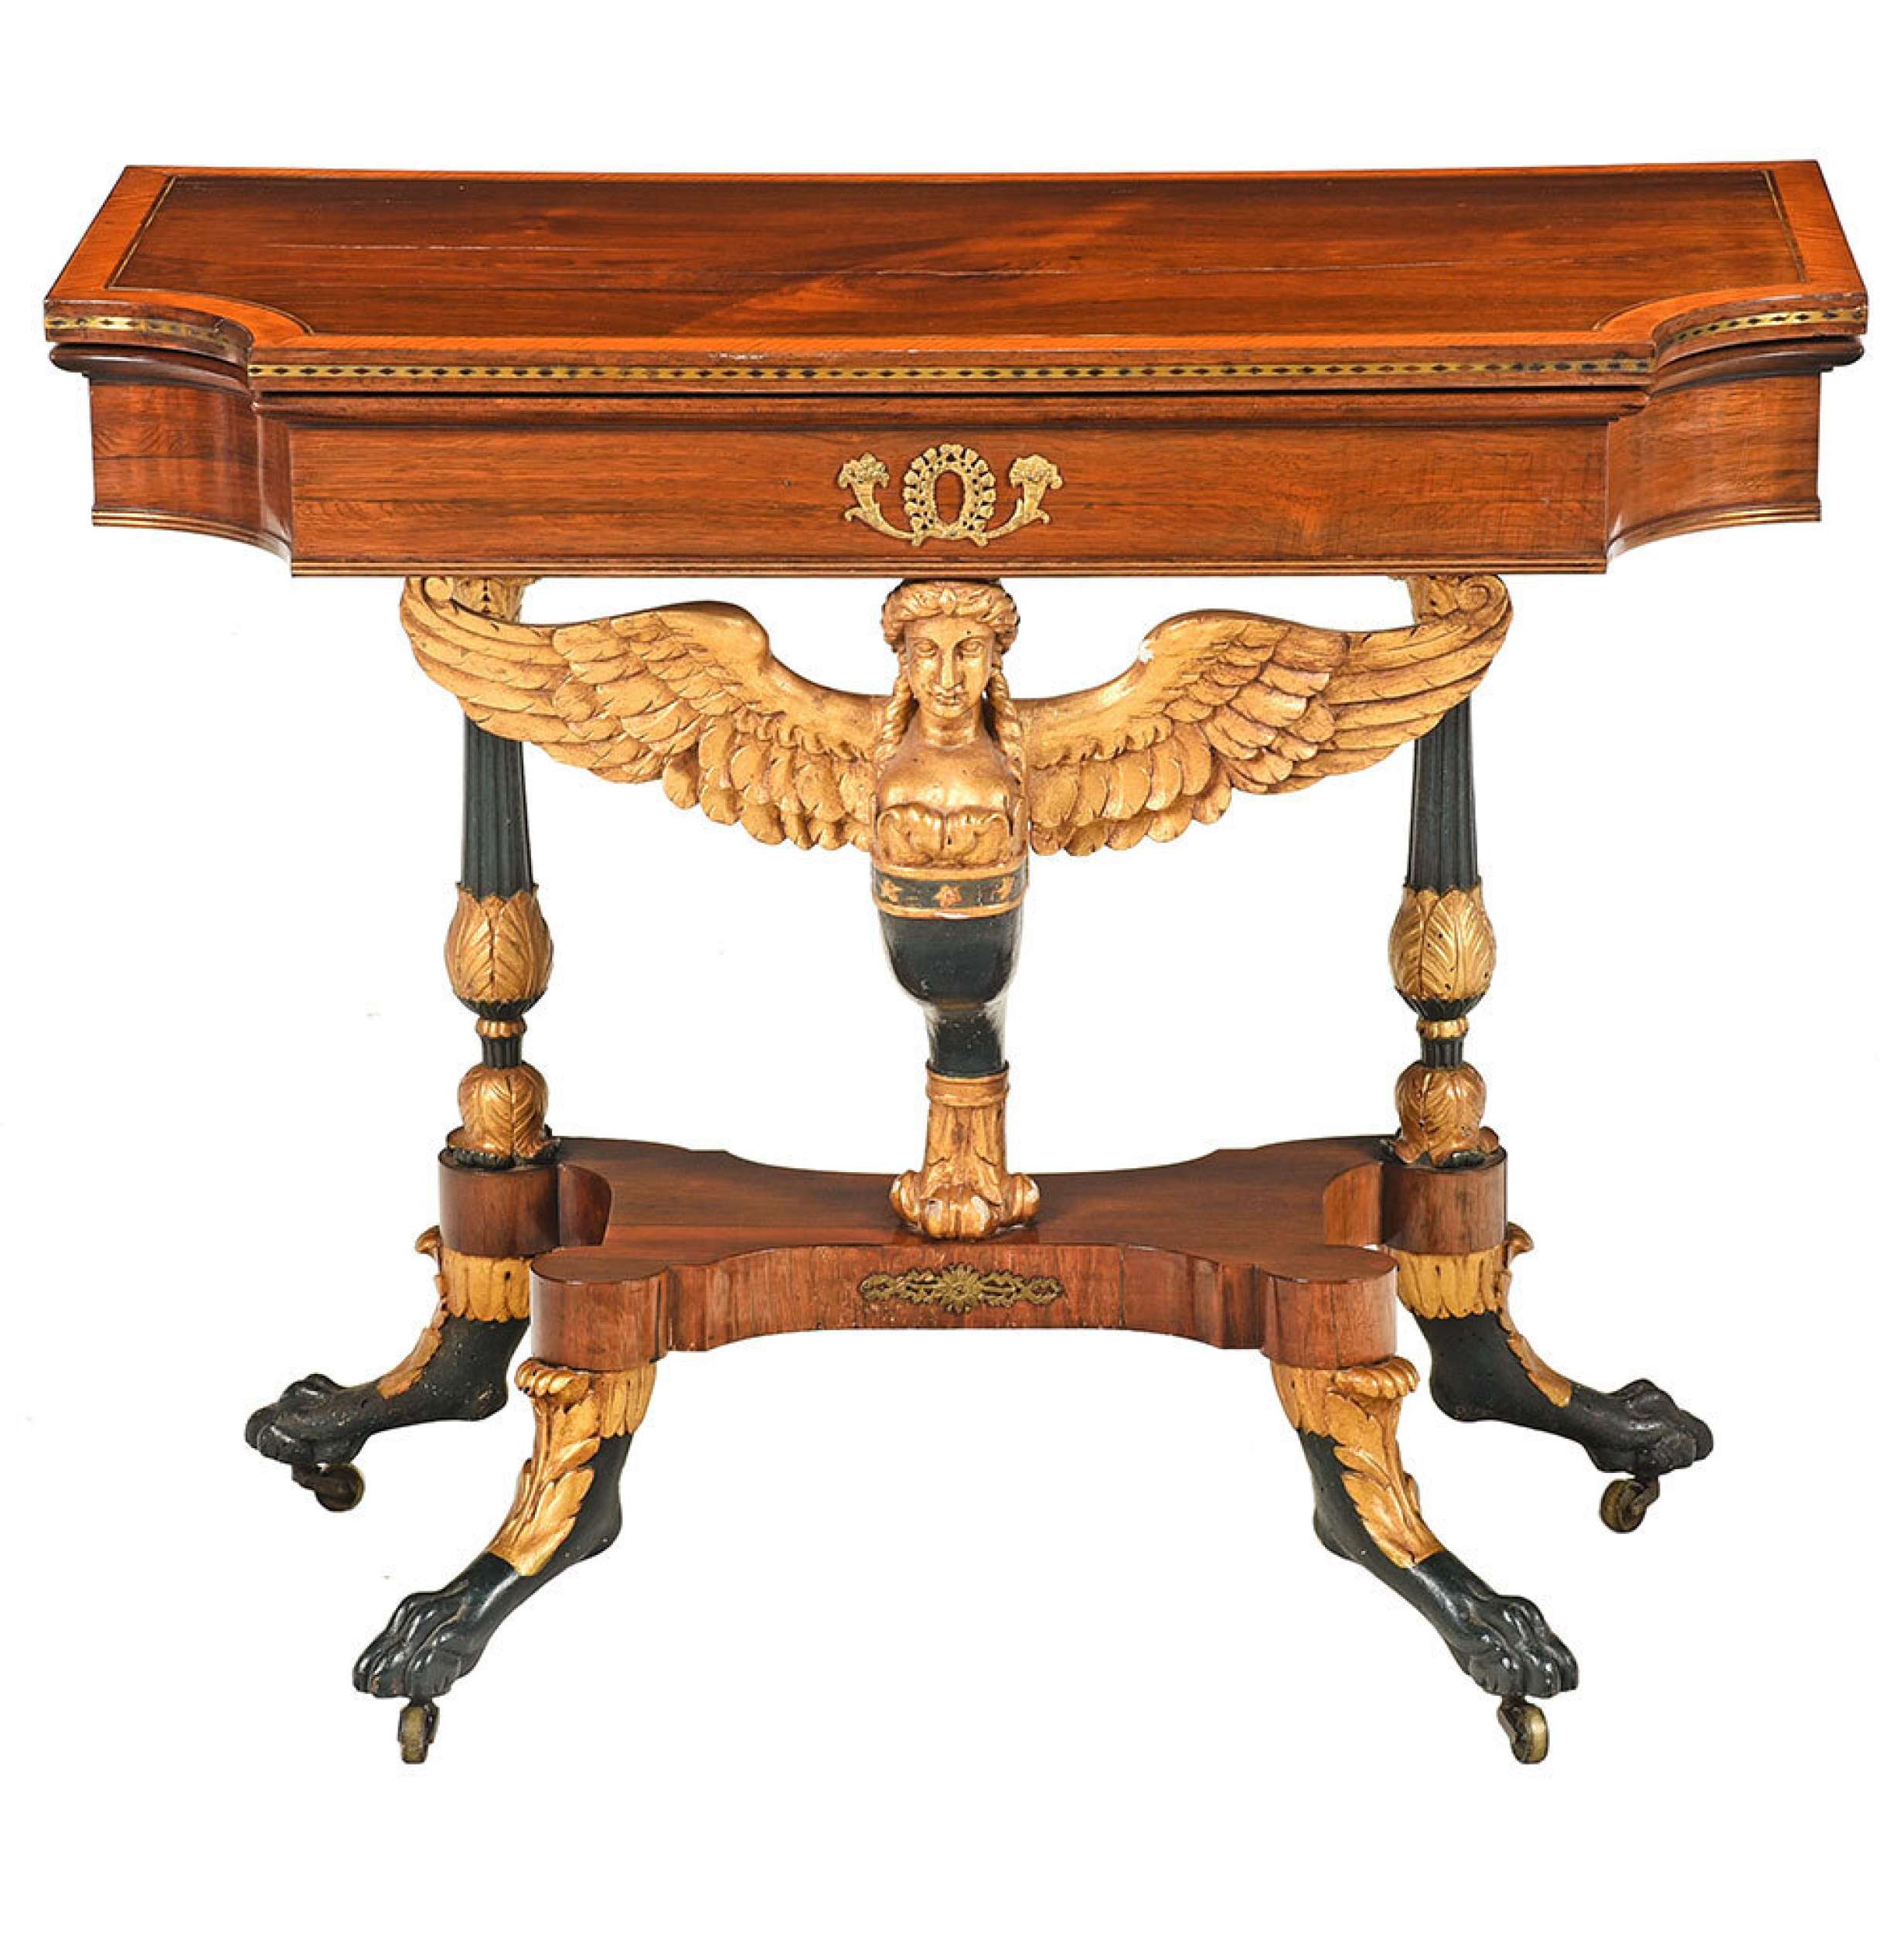 SOLD: $159,000 Fine Classical Gilt, Vert Antique, and Rosewood Caryatid Table